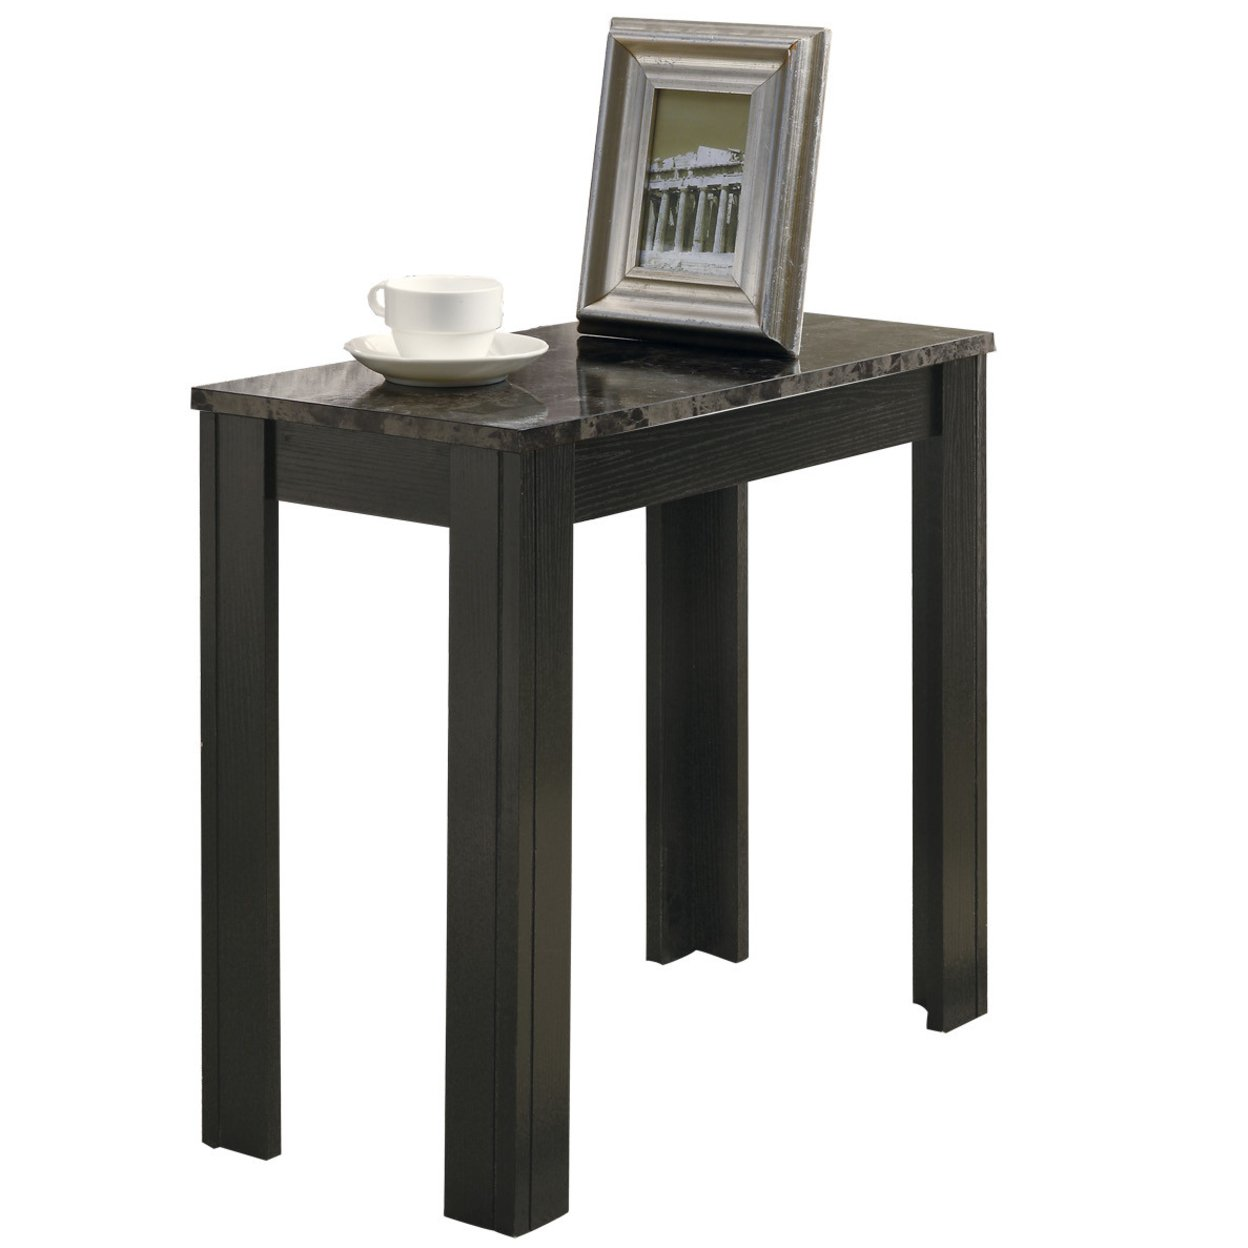 Zingz & Thingz 57072574 White Lacquer Side Table